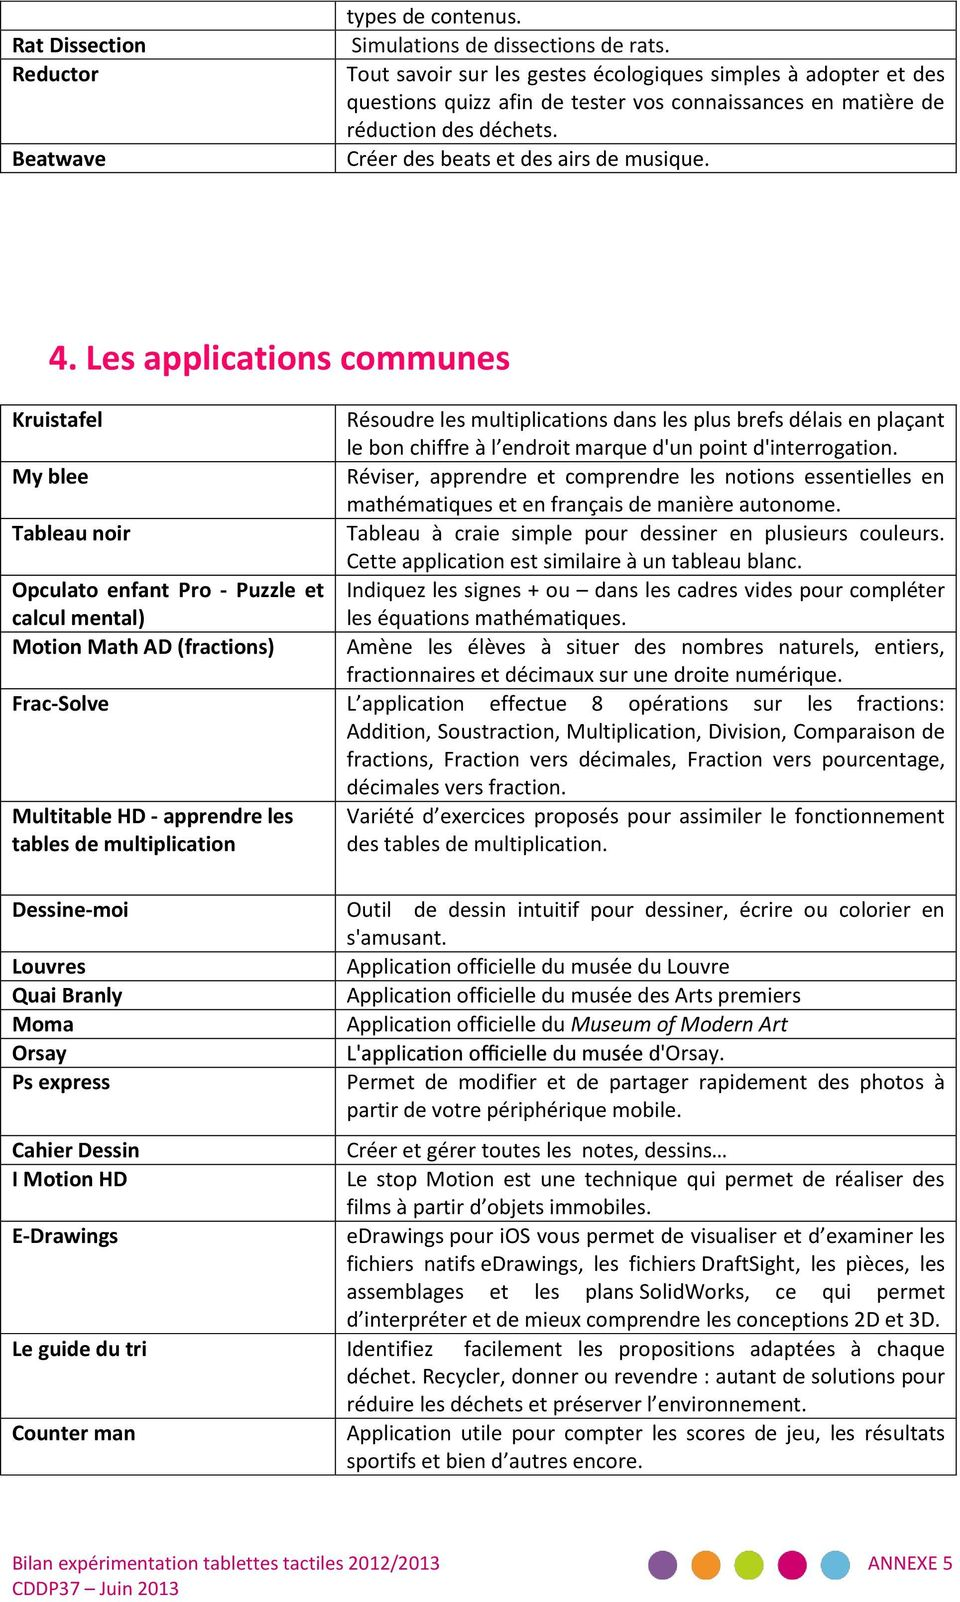 Annexe 5 ressources et applications utilis es pdf - Application pour apprendre les tables de multiplication ...